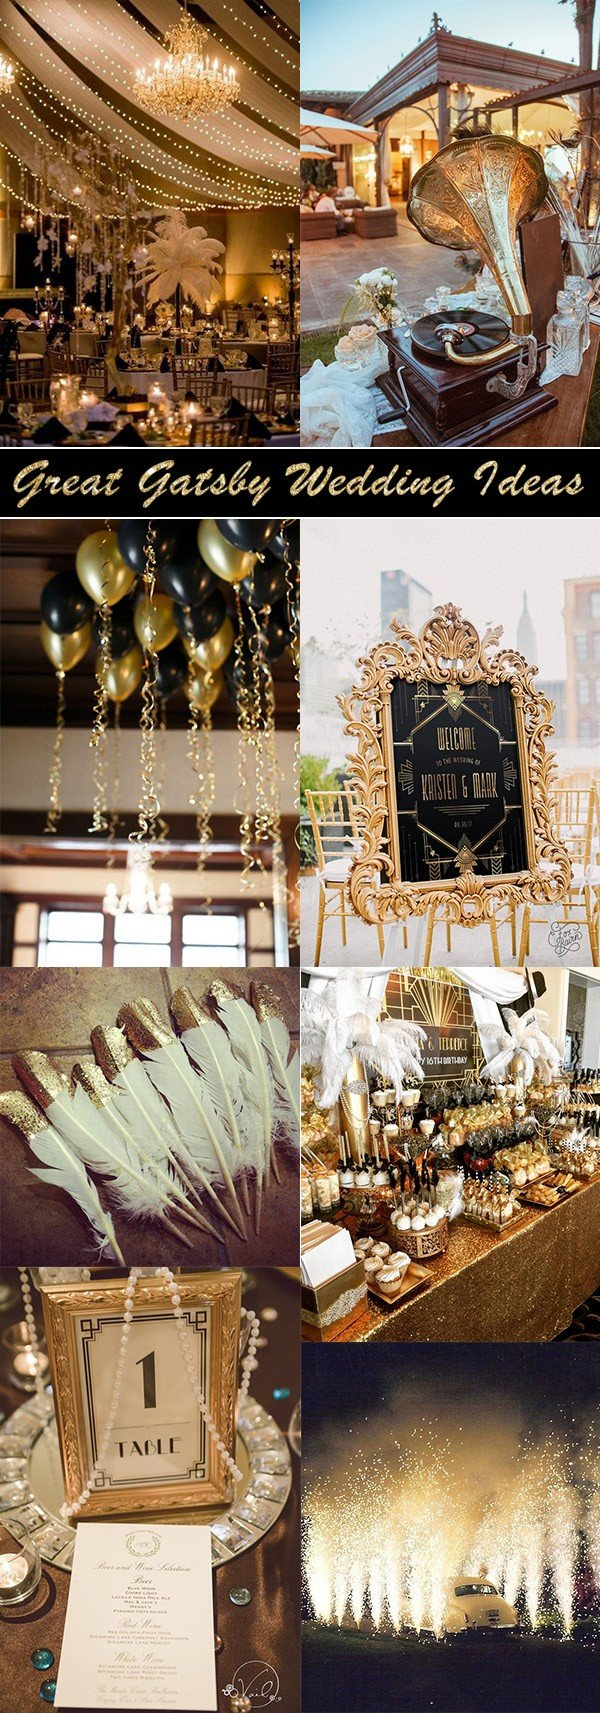 30 Great Gatsby Vintage Wedding Ideas for 2018 Trends Oh Best Day Ever